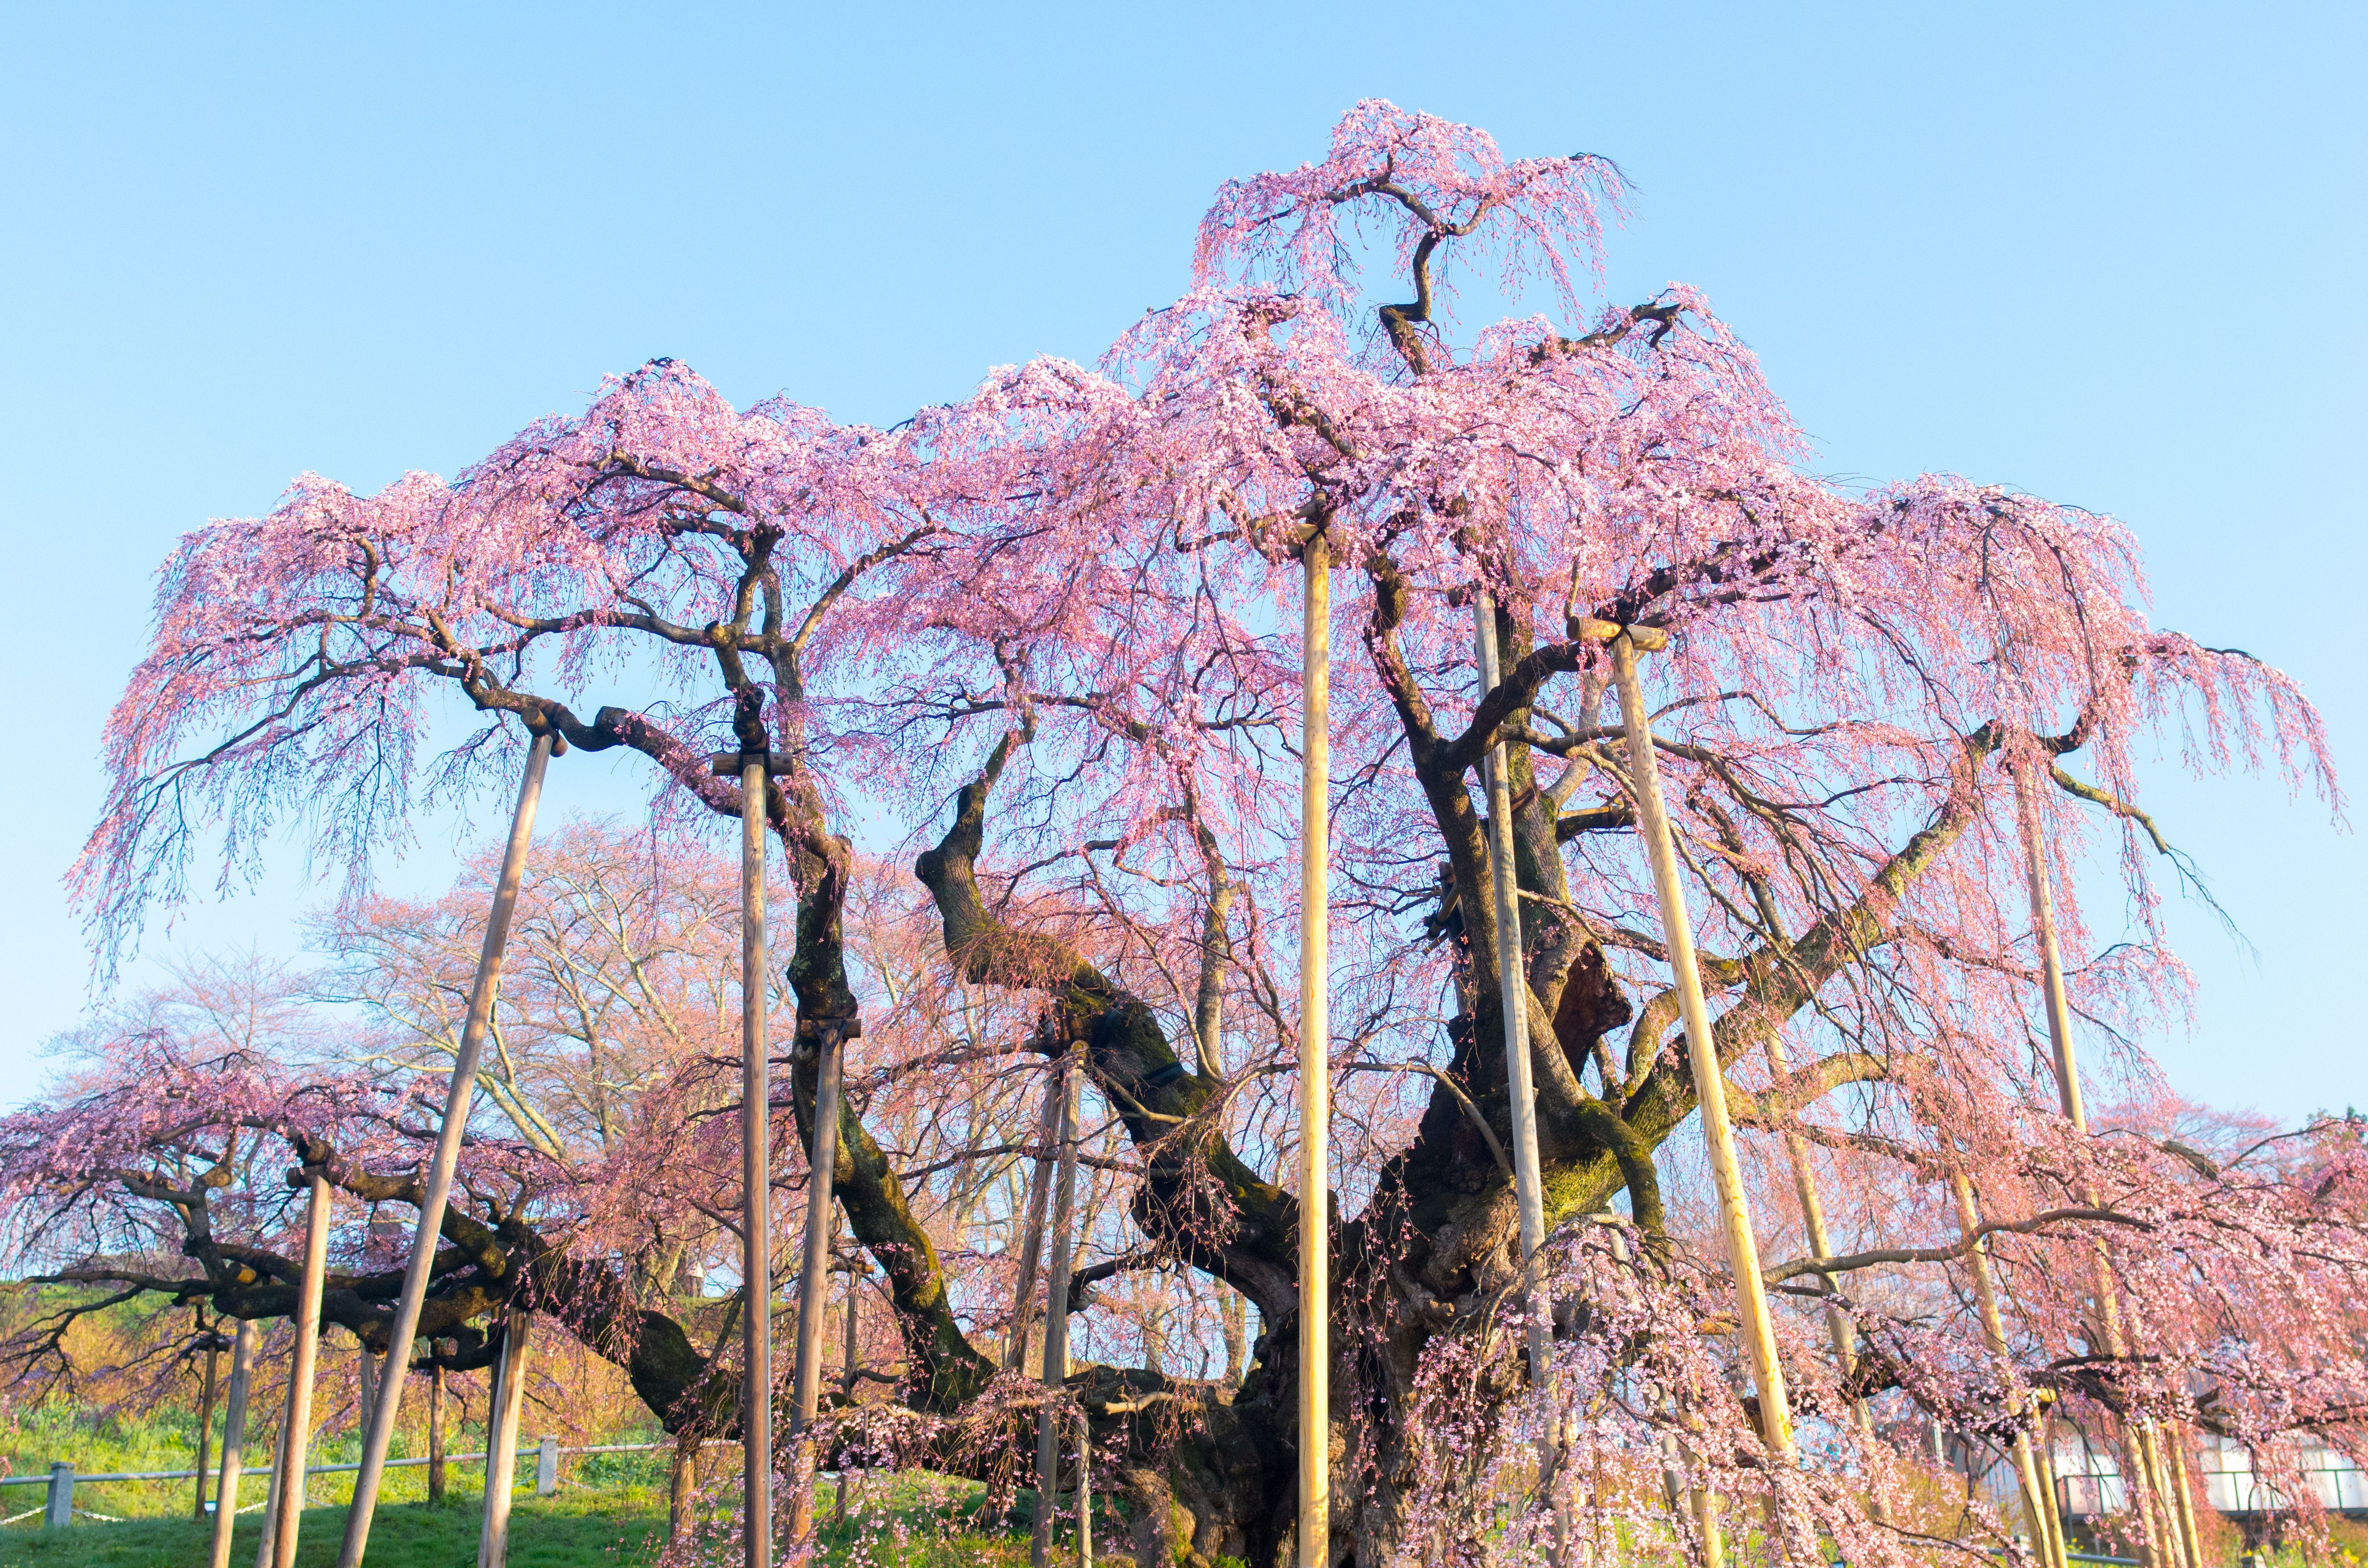 1,000-Year-Old Cherry Tree Blooms in Japan